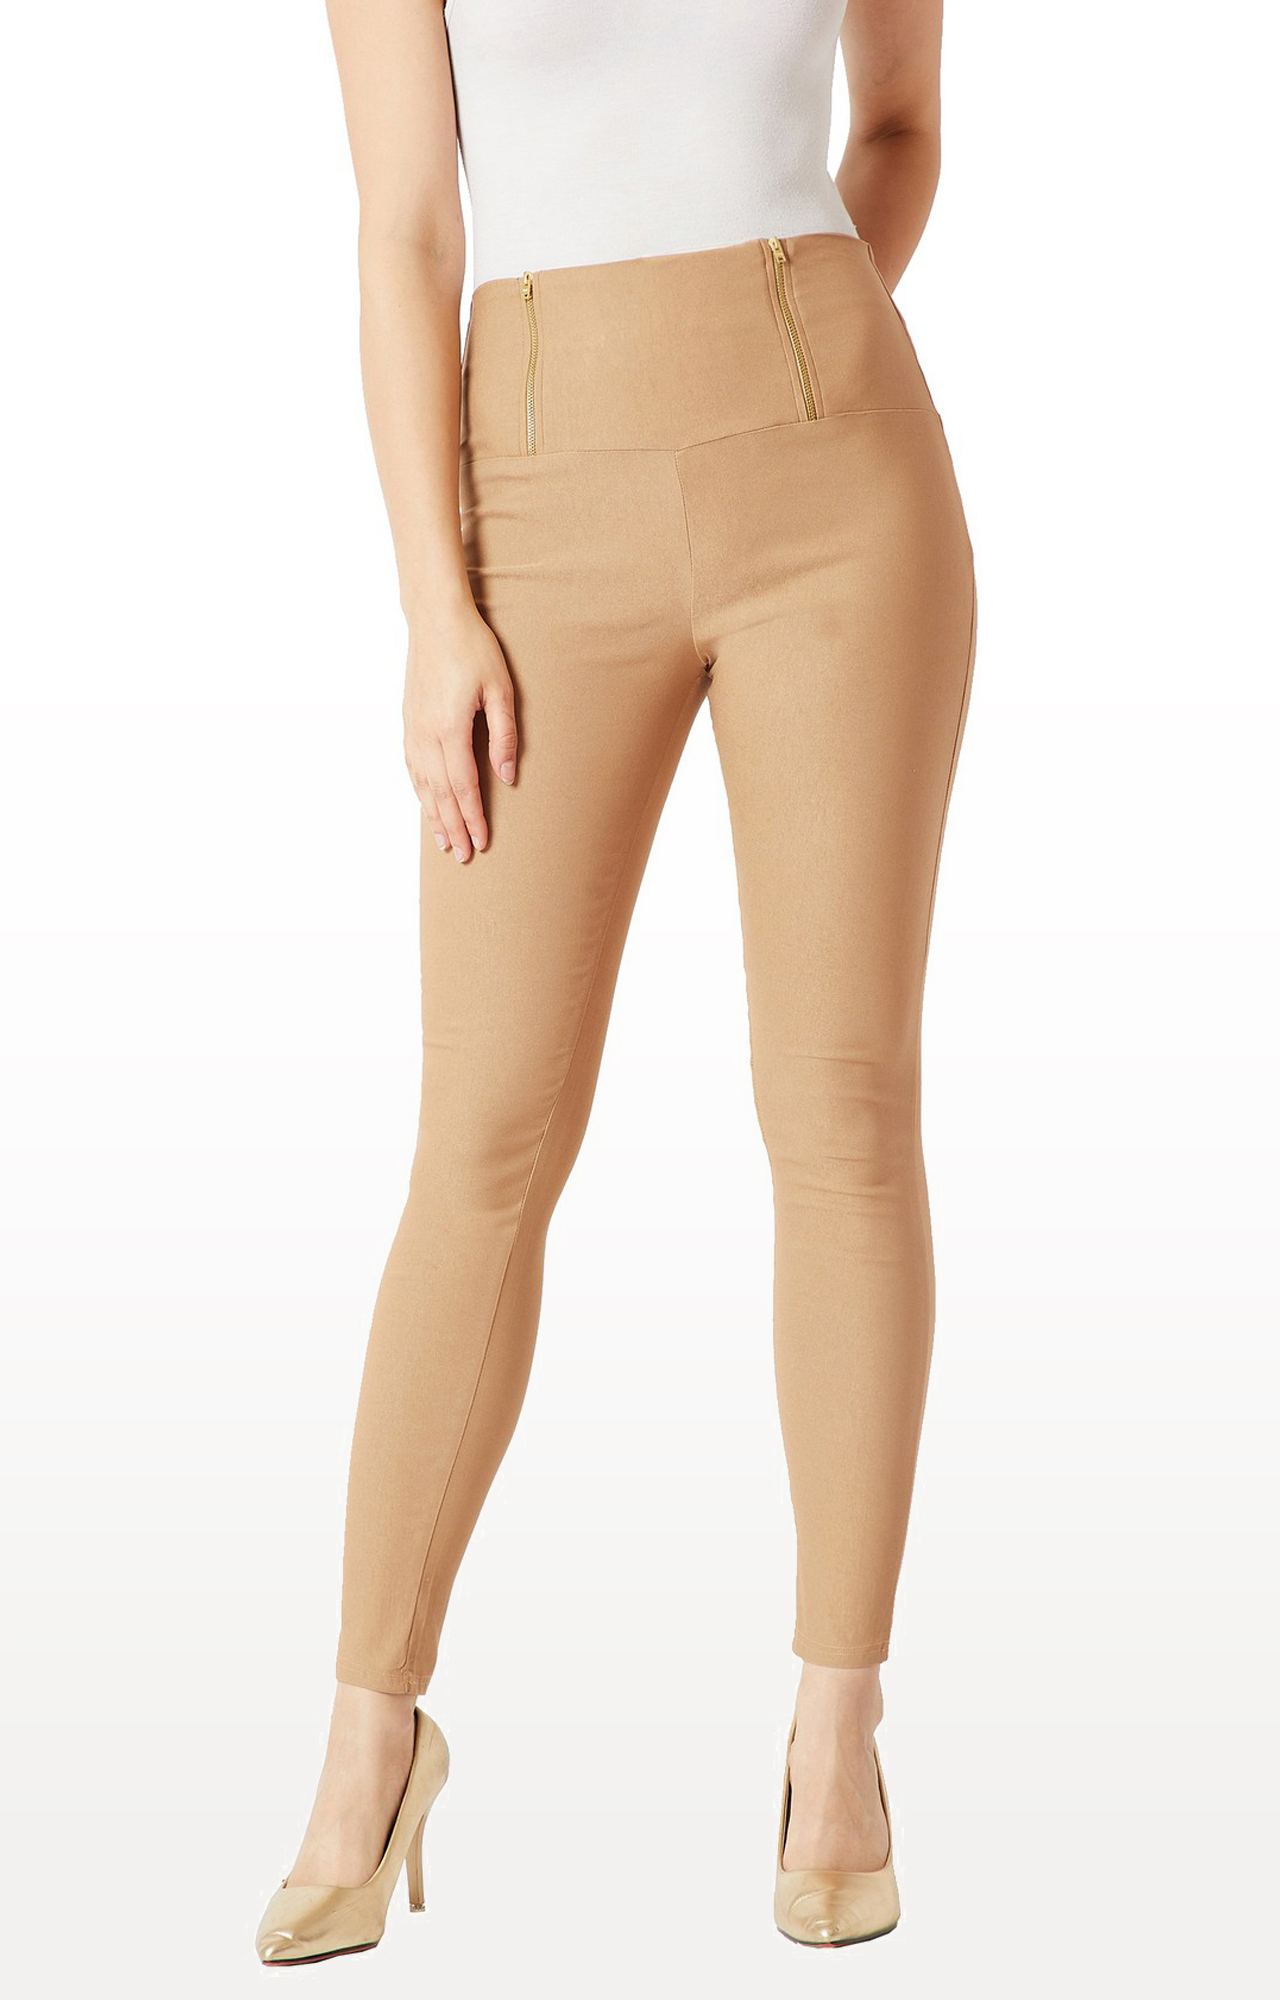 MISS CHASE   Beige Jeggings